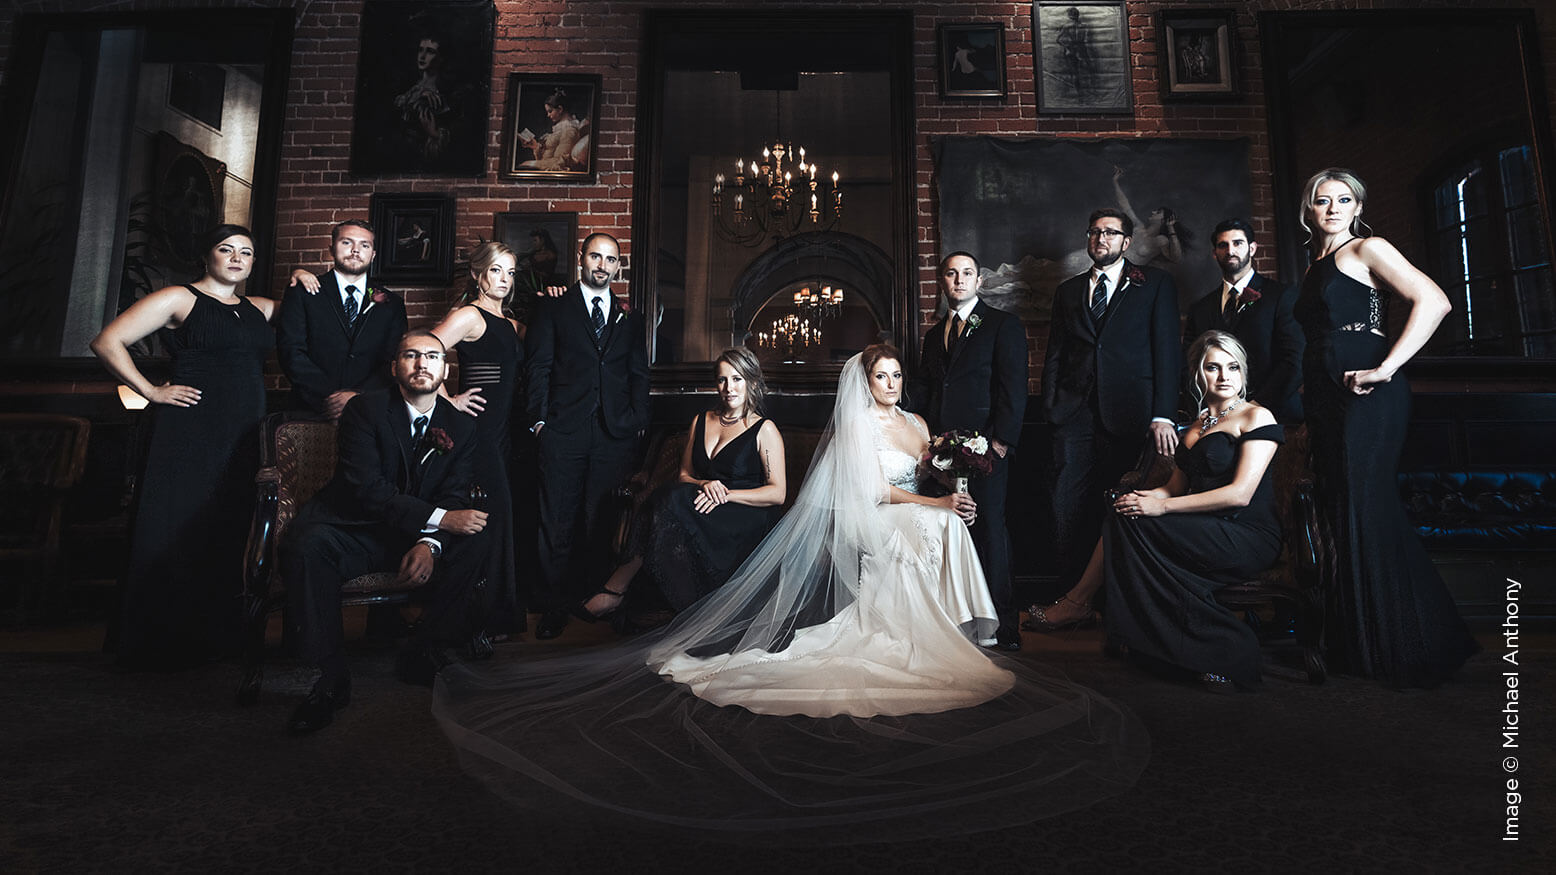 5 Tips for Better Bridal Party Images